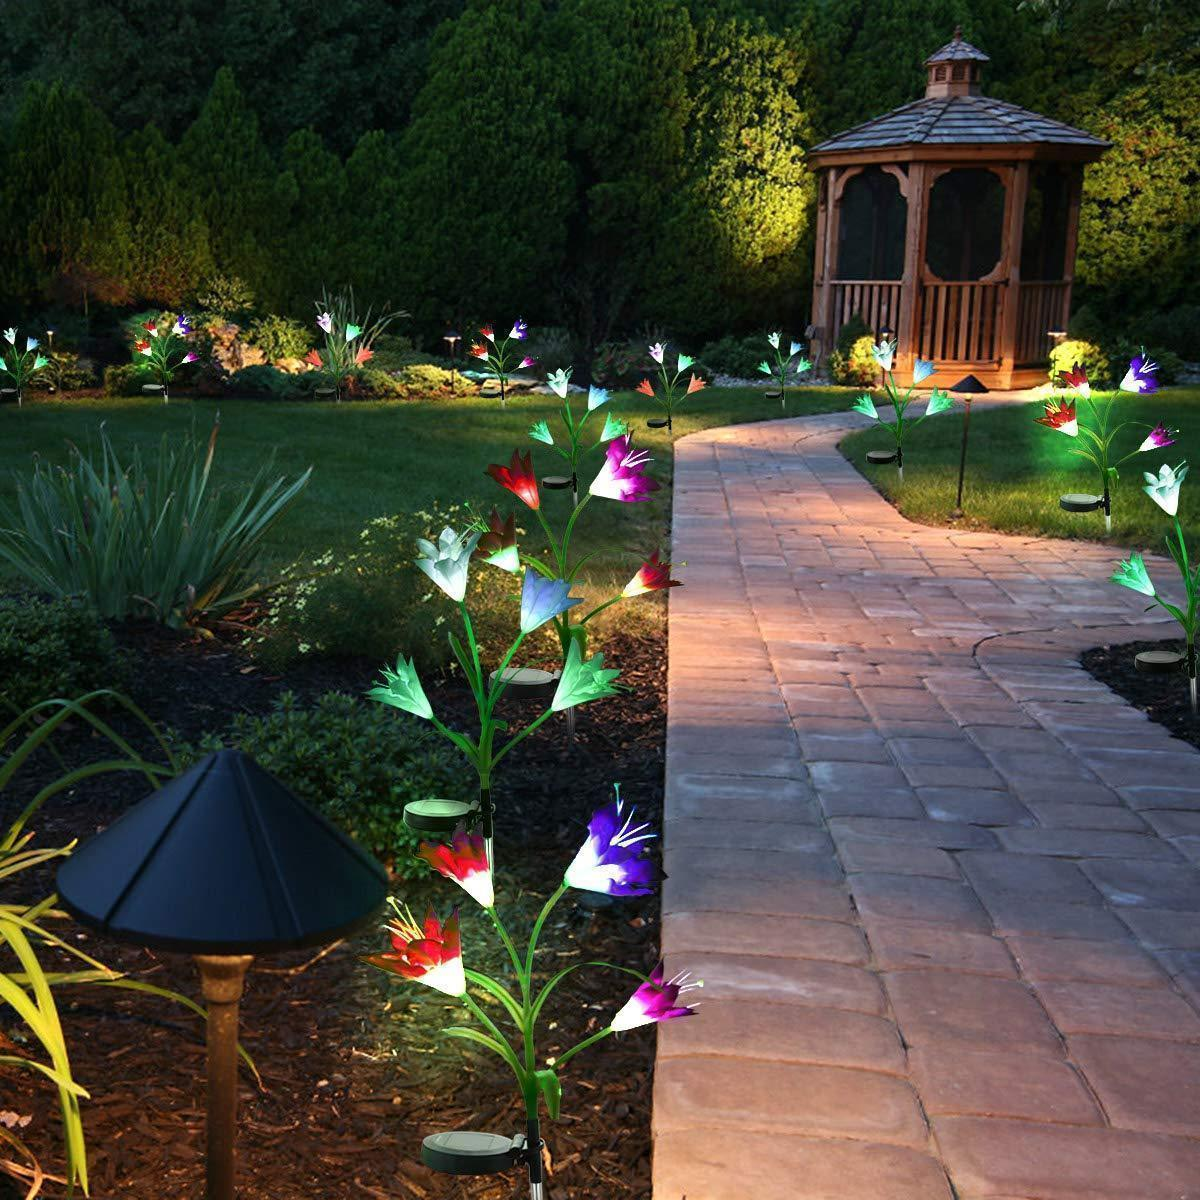 【50% Off Today Only】Spring Artificial Lily Solar Garden Stake Lights(1 Pack of 4 Lilies)